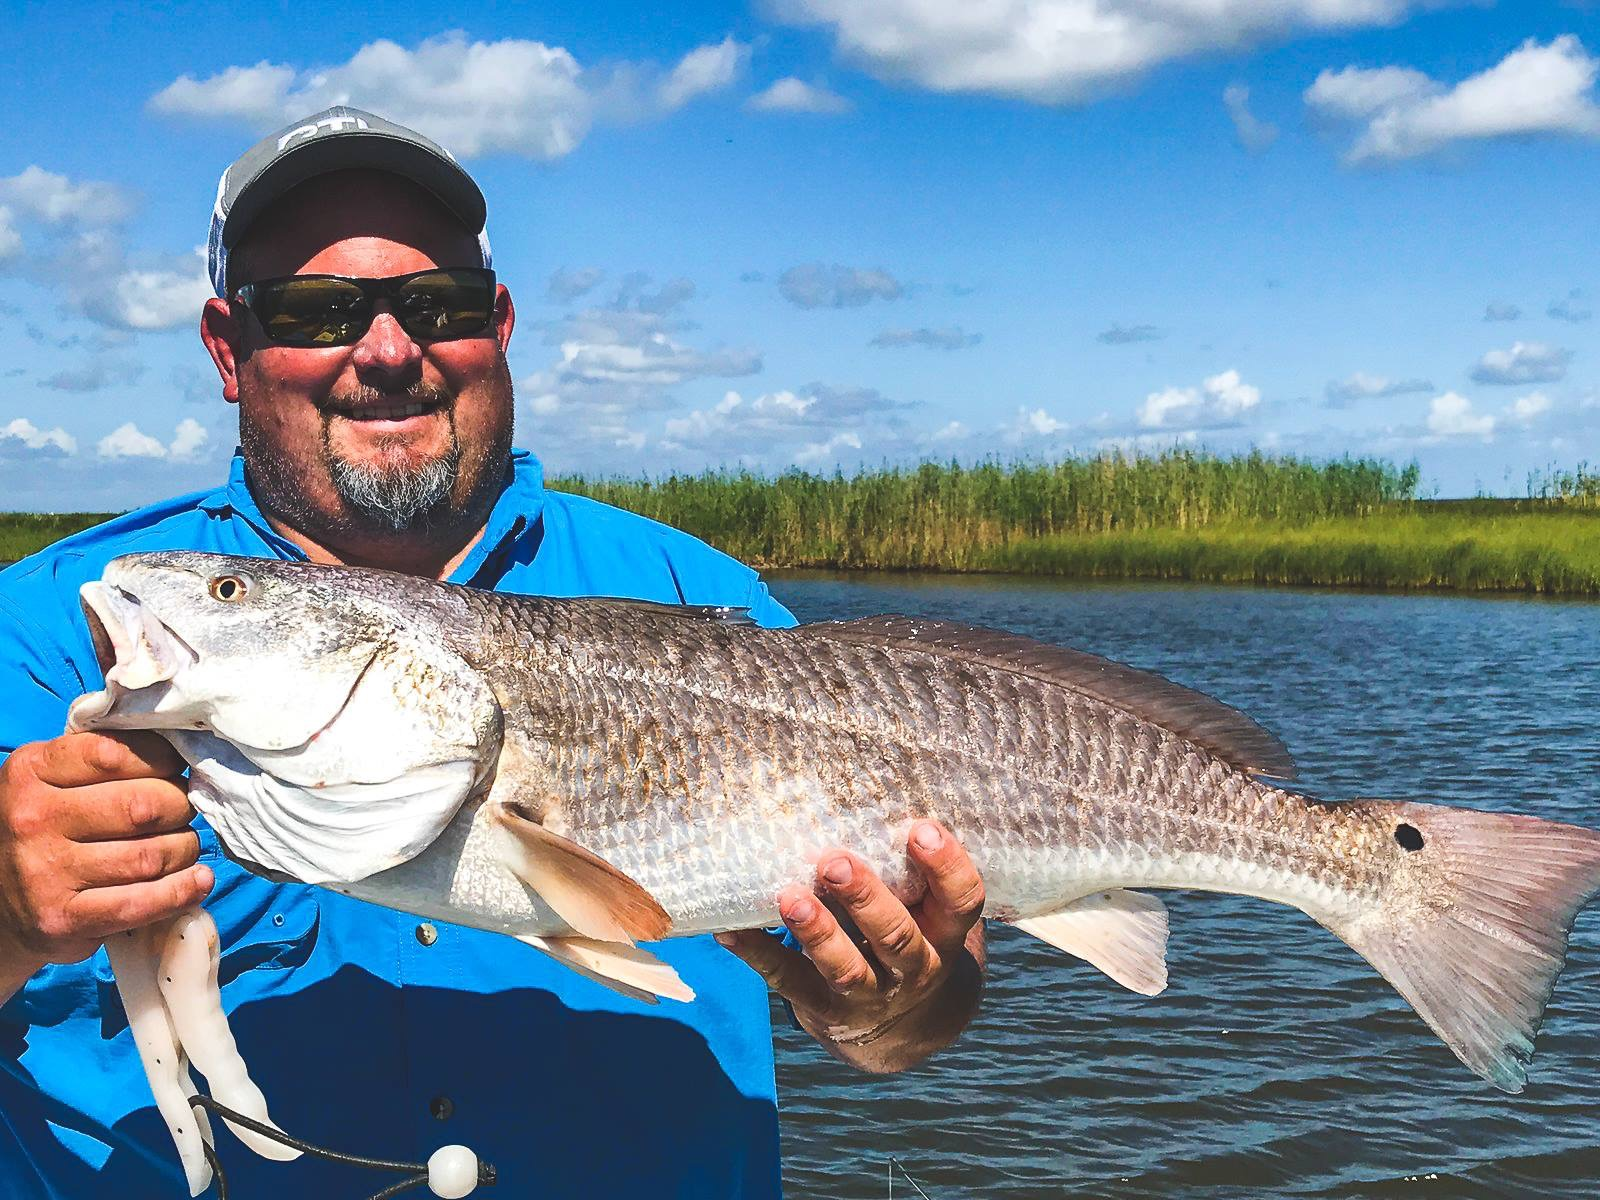 louisiana-redfish-and-speckled-trout-1548286576503962996